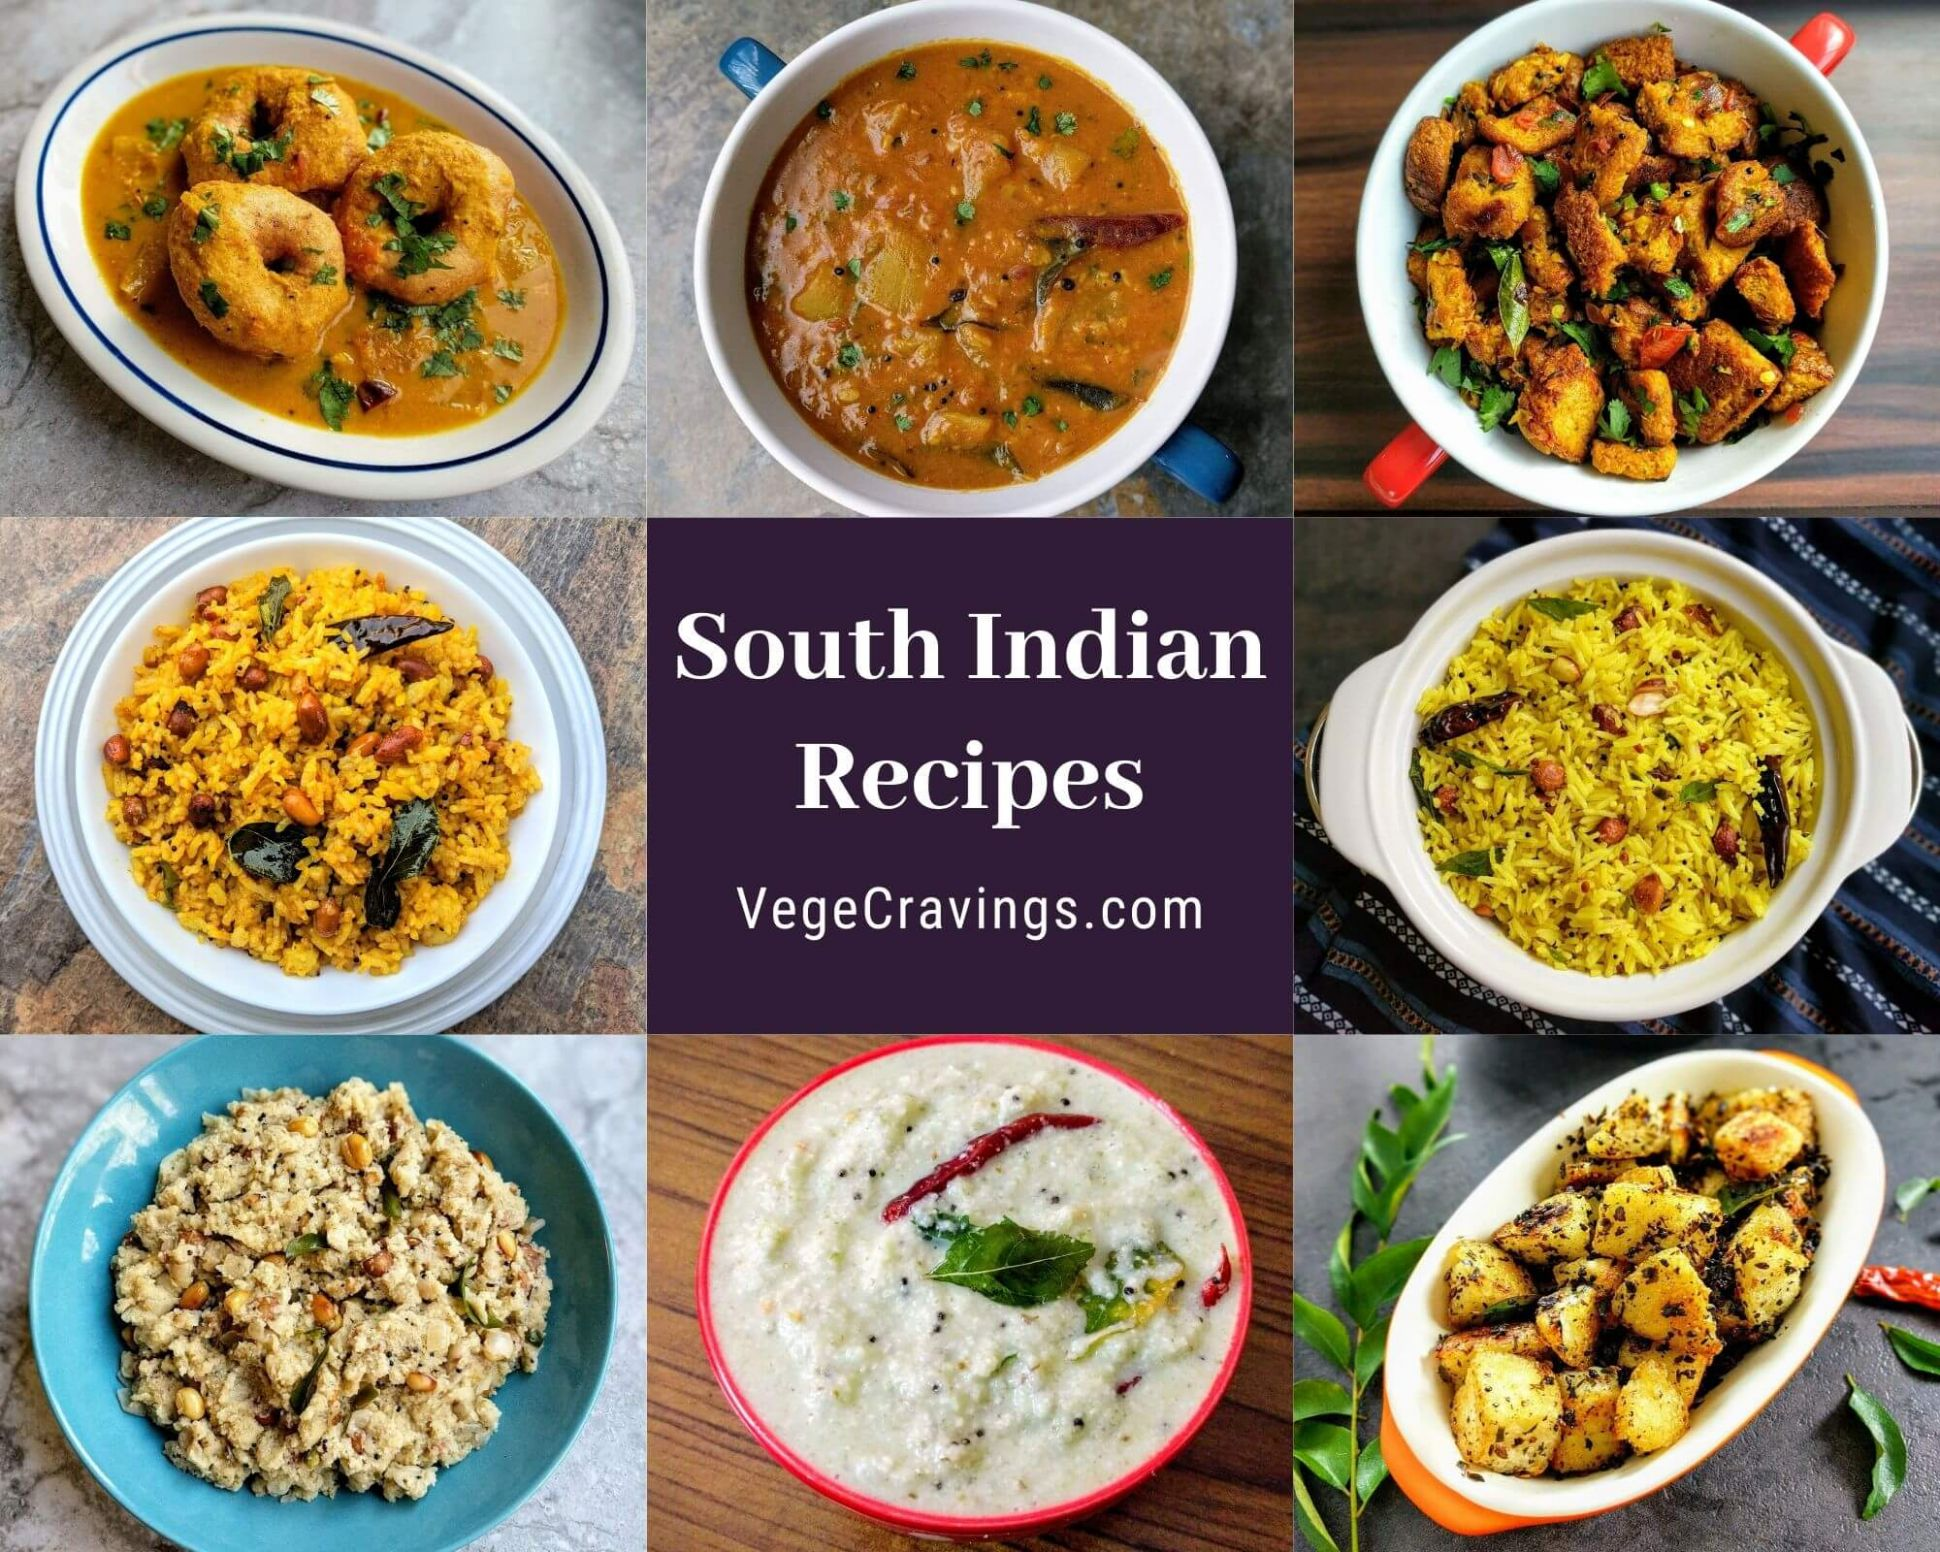 South Indian Recipes | 12 Delicious South Indian Dishes | VegeCravings - Dinner Recipes Vegetarian South Indian